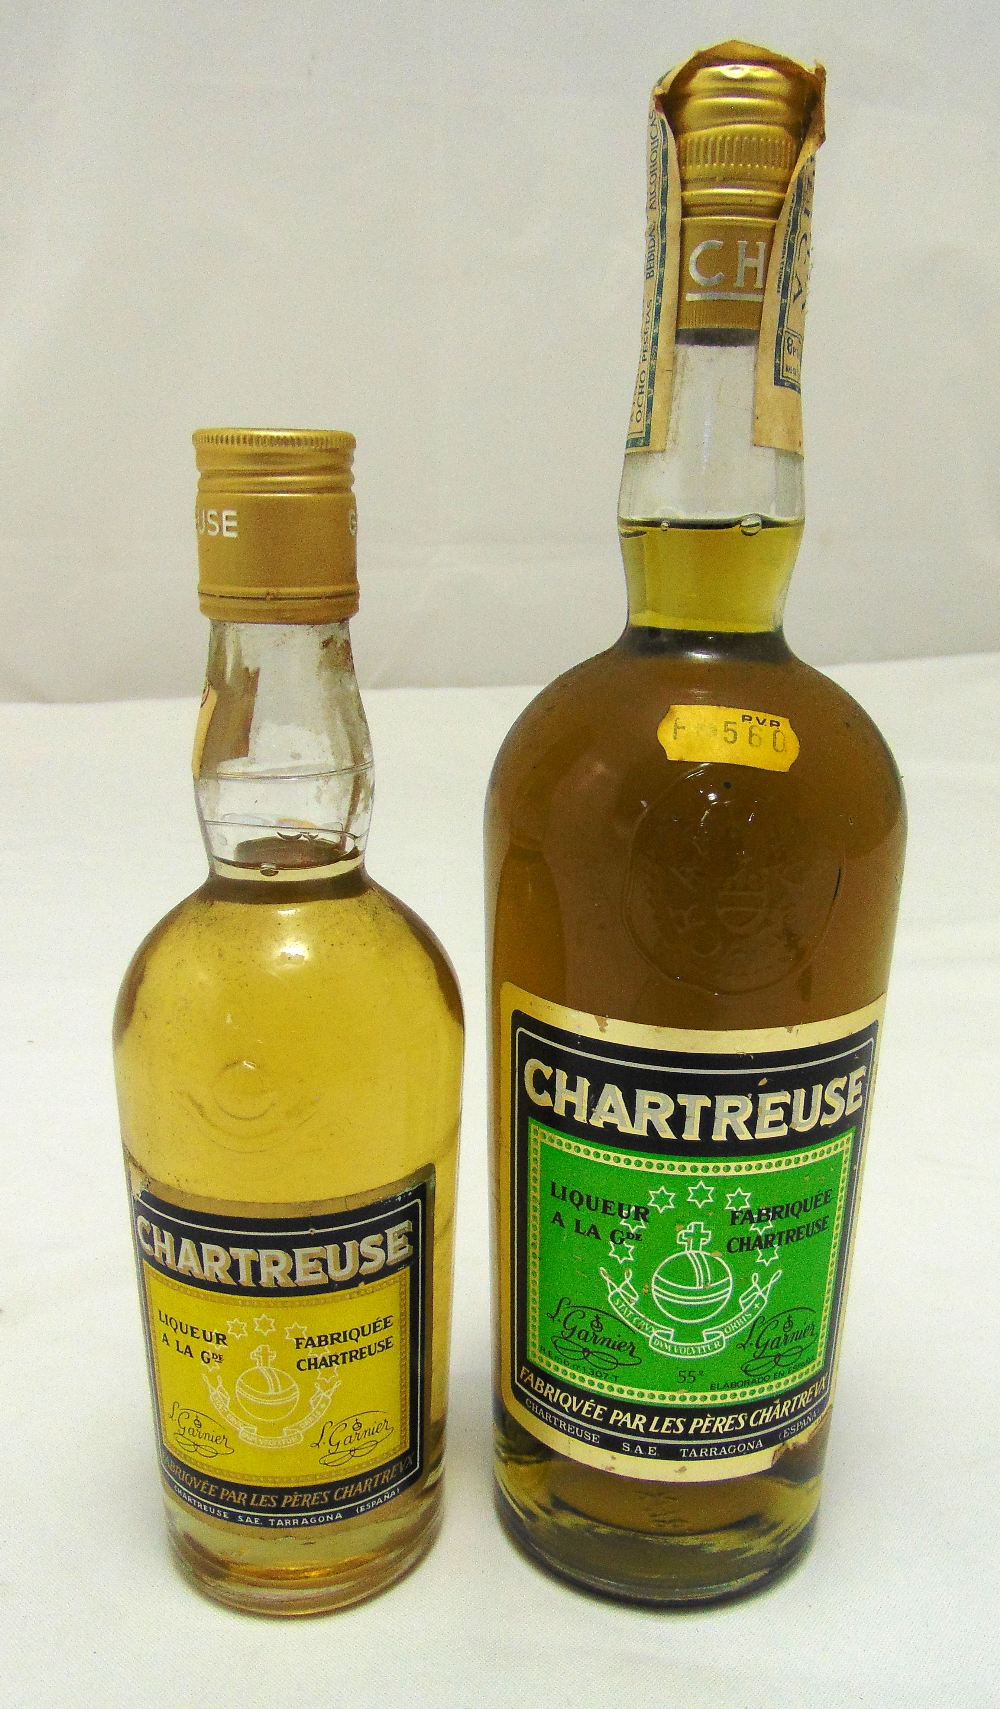 L. Garnier Chartreuse Green label 55 proof, 70 cl and Yellow label 35cl